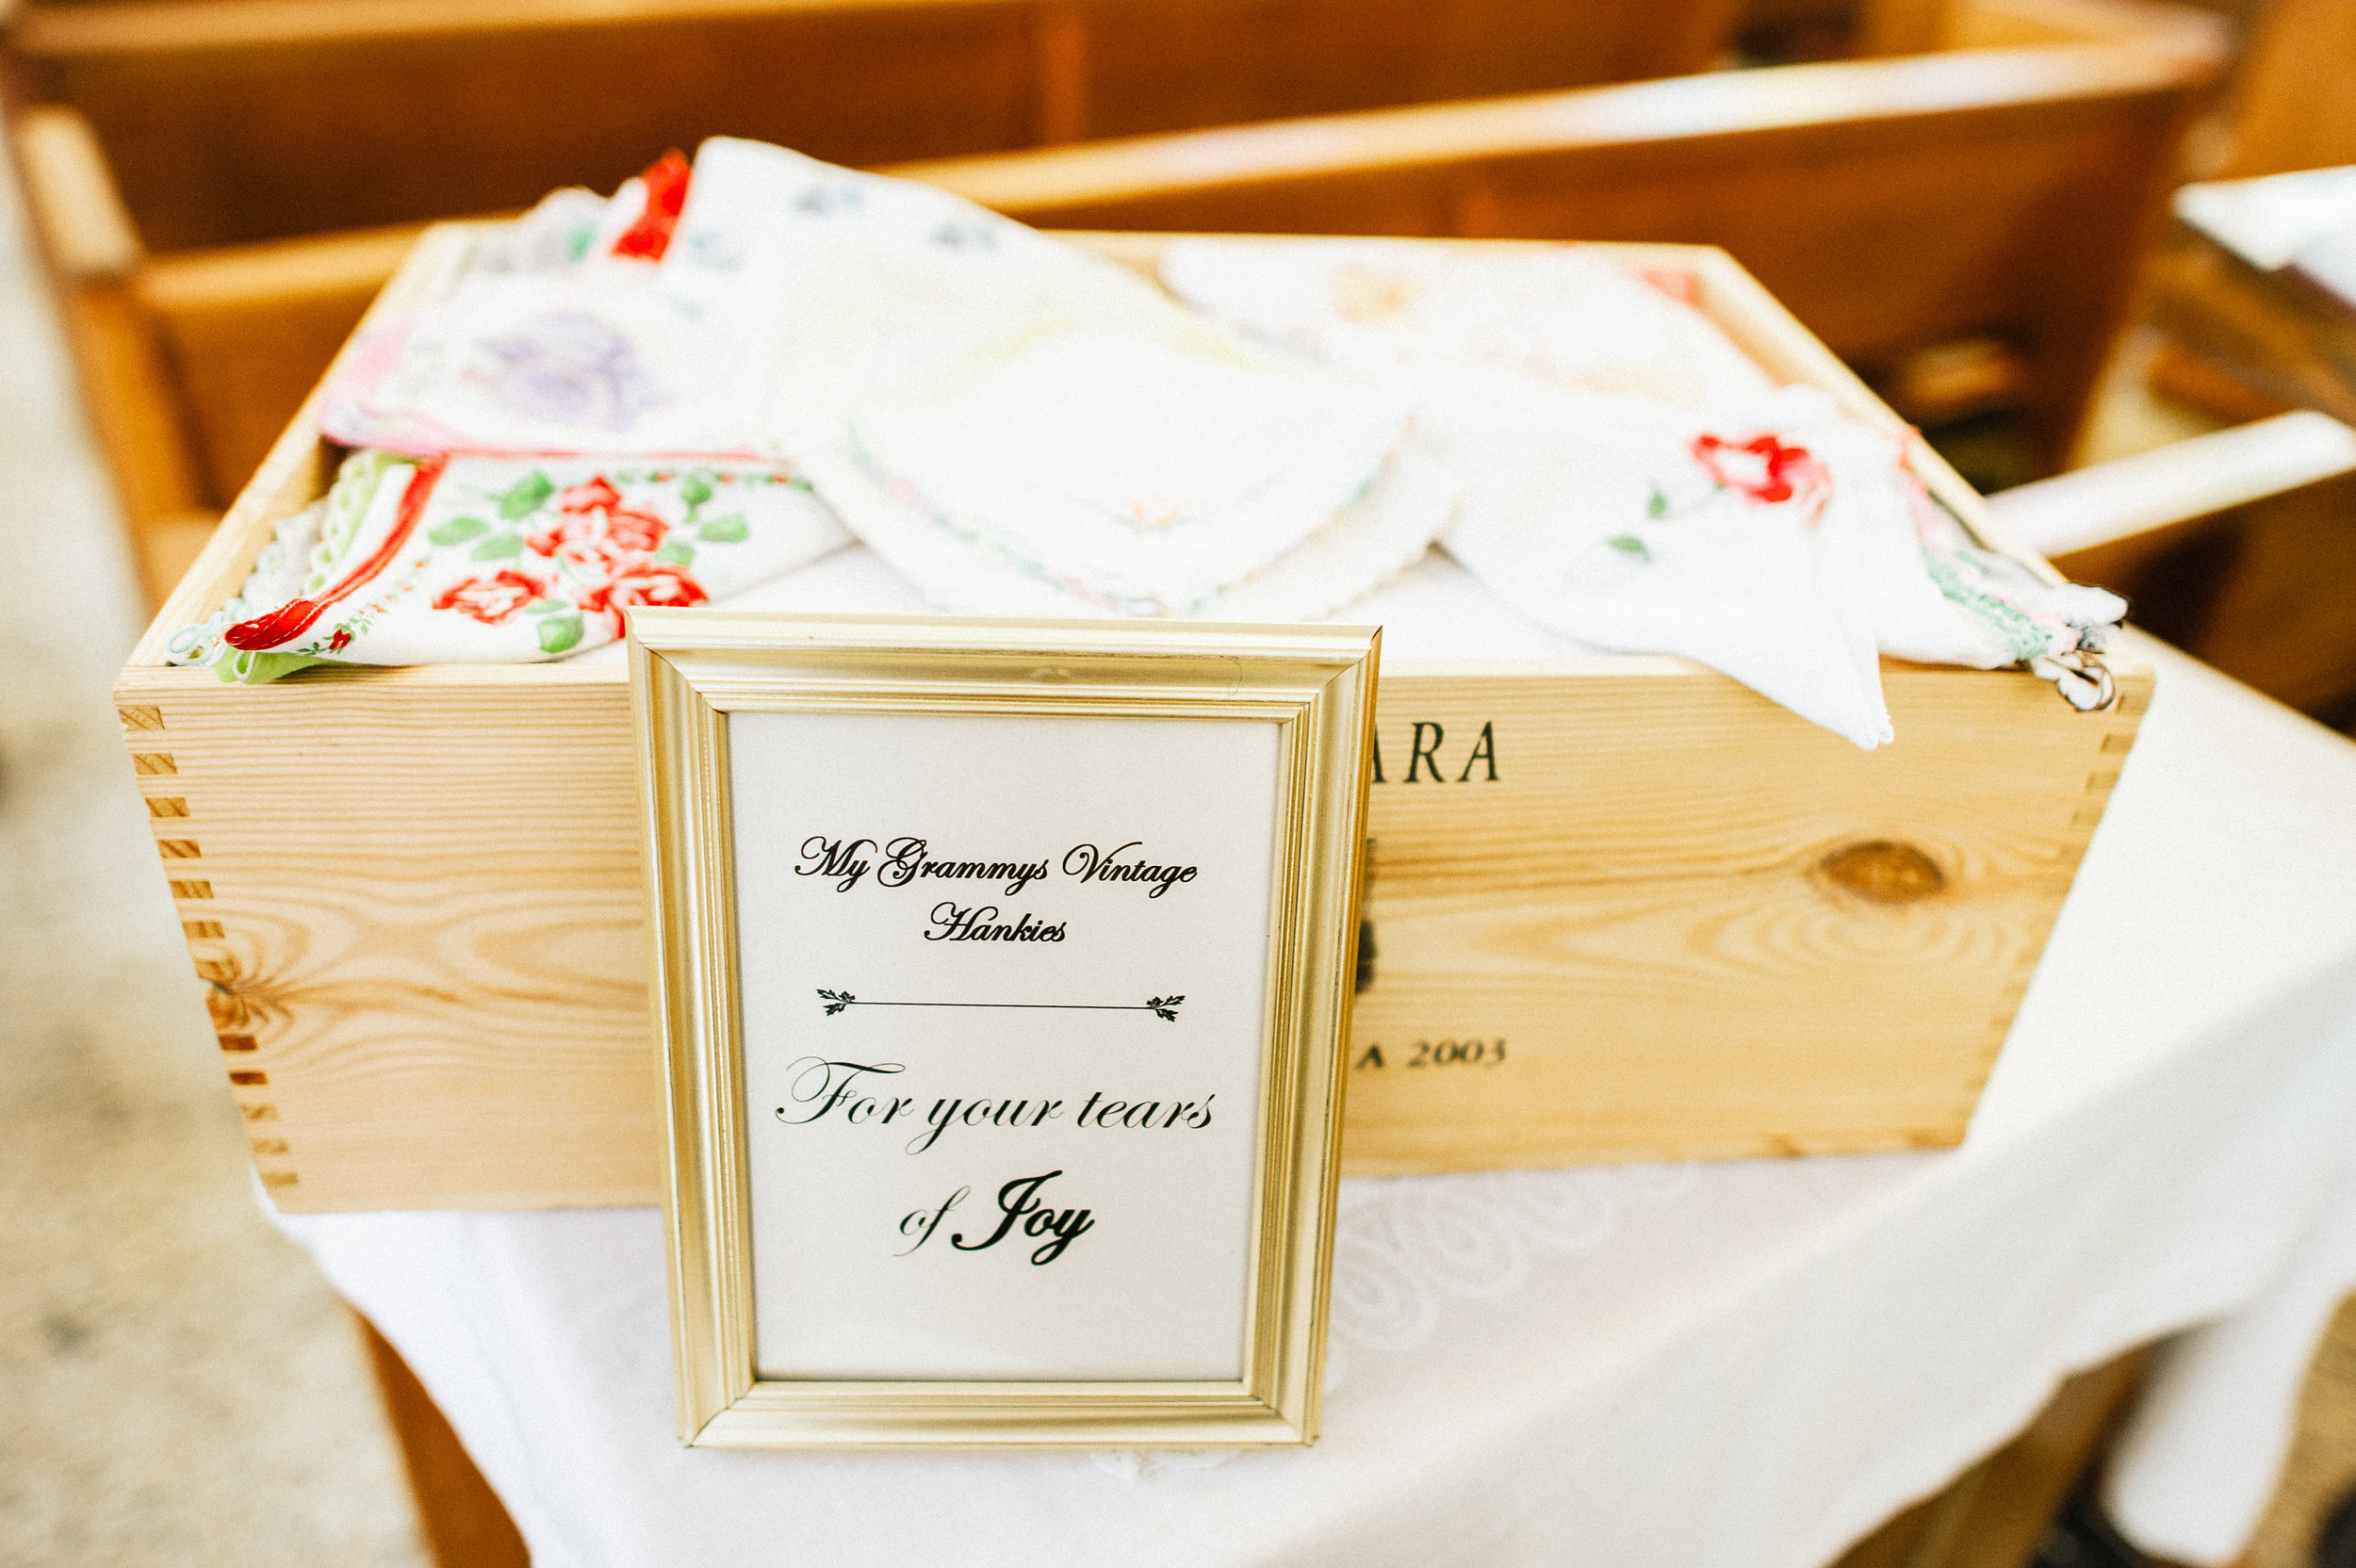 Vintage handkerchiefs (belonging to the bride's late grandmother) were provided to guests during the ceremony, for tears of joy of course!